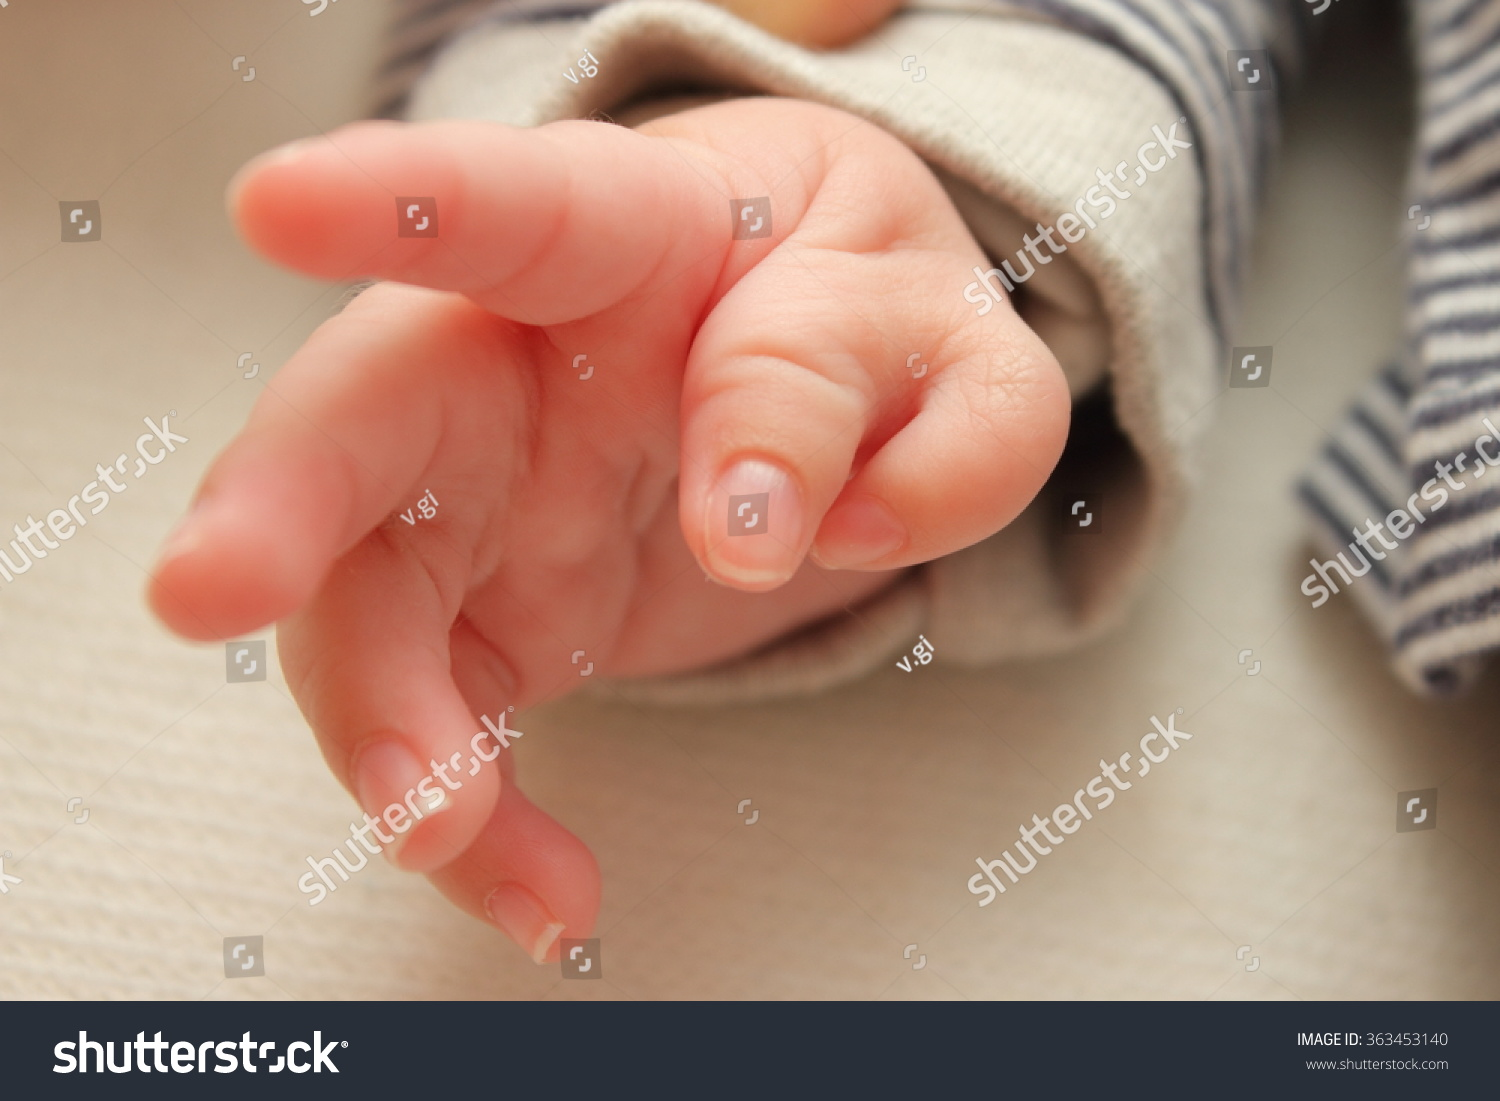 Polydactyly Child Hand Congenital Six Fingers Stock Photo (Royalty ...